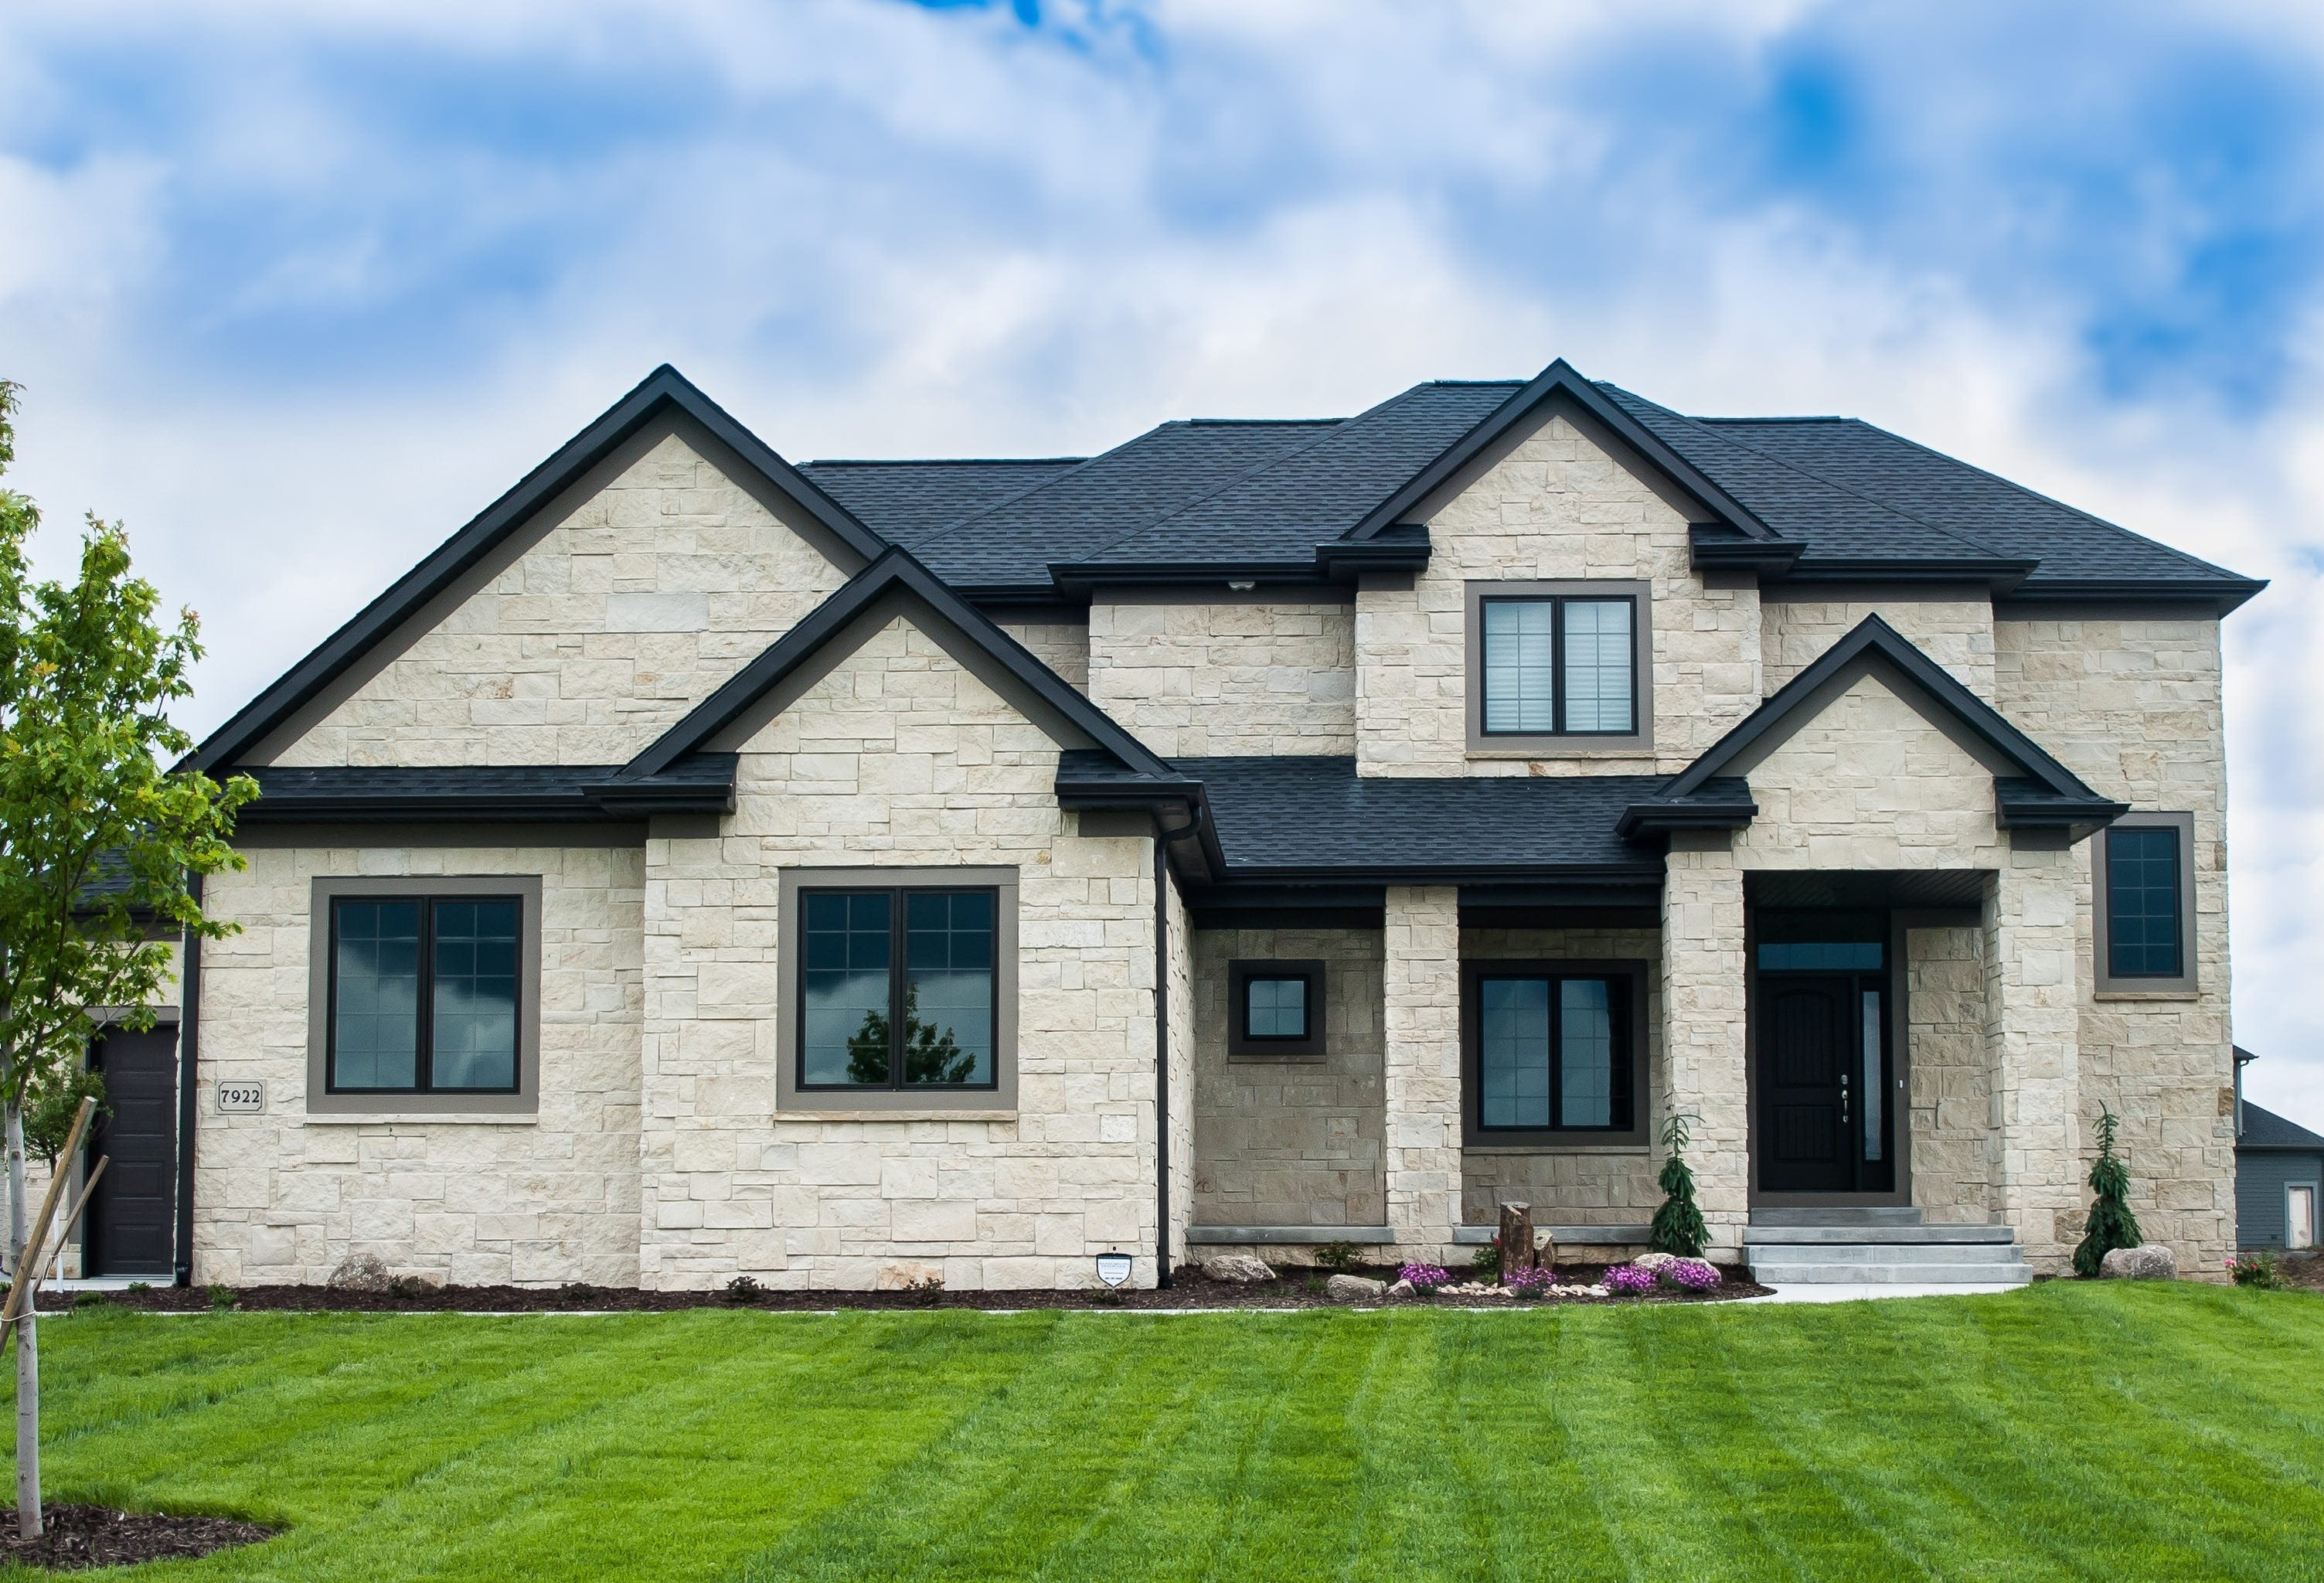 Stone Exterior House Maintenance Stone Exterior House Home Interior Natural Stone Siding